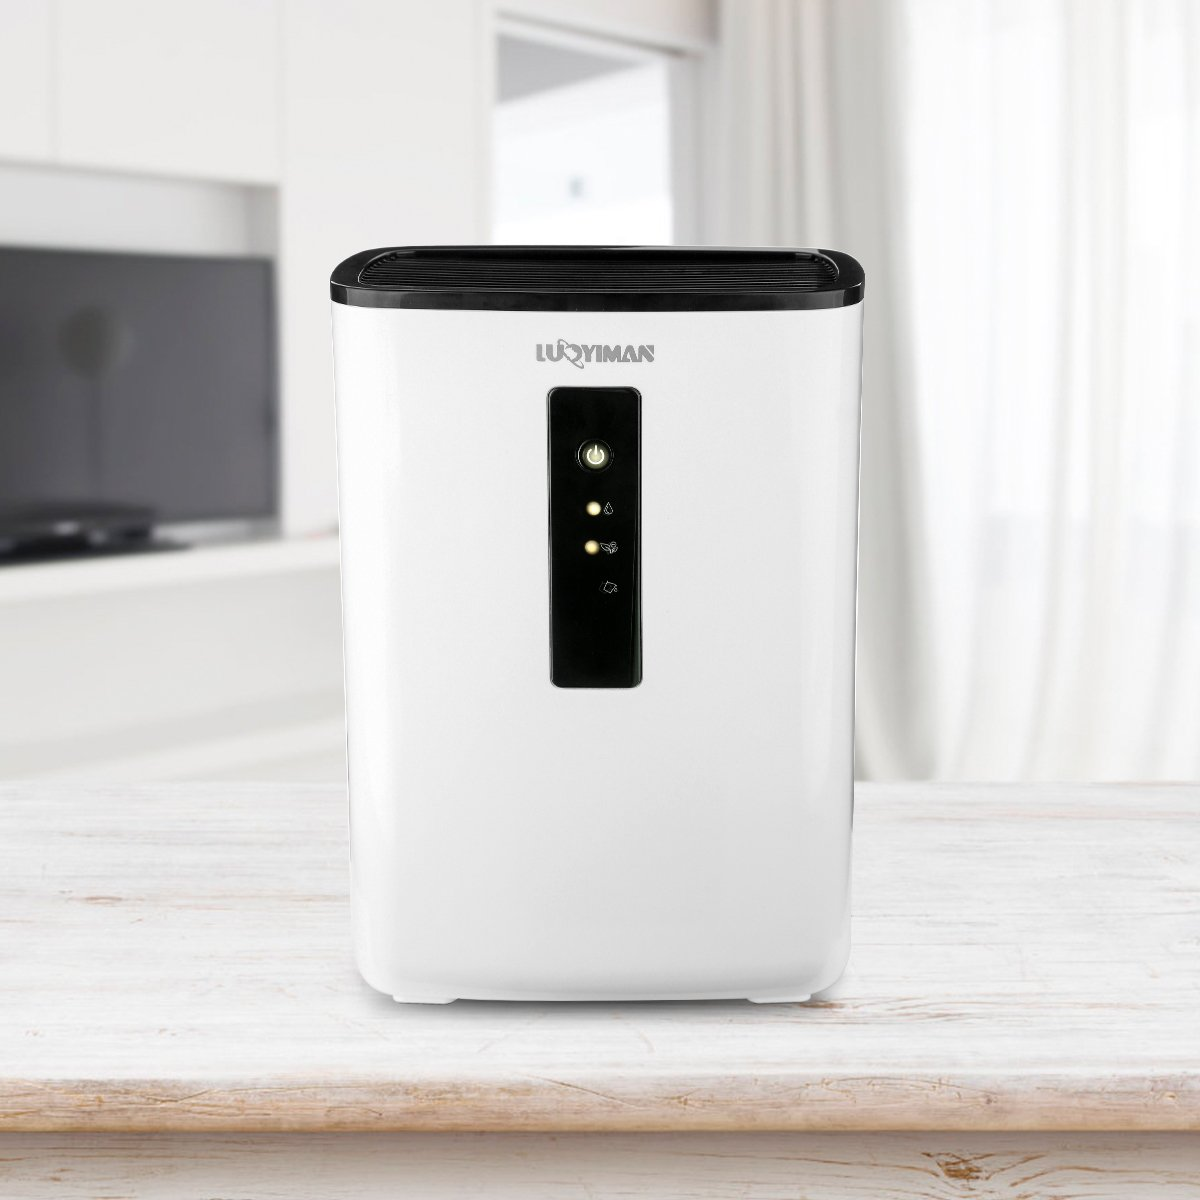 LUOYIMAN Dehumidifier Electric Home Dehumidifier Quiet Operation with UV Sterilization (2.5 Liter) by LUOYIMAN (Image #8)